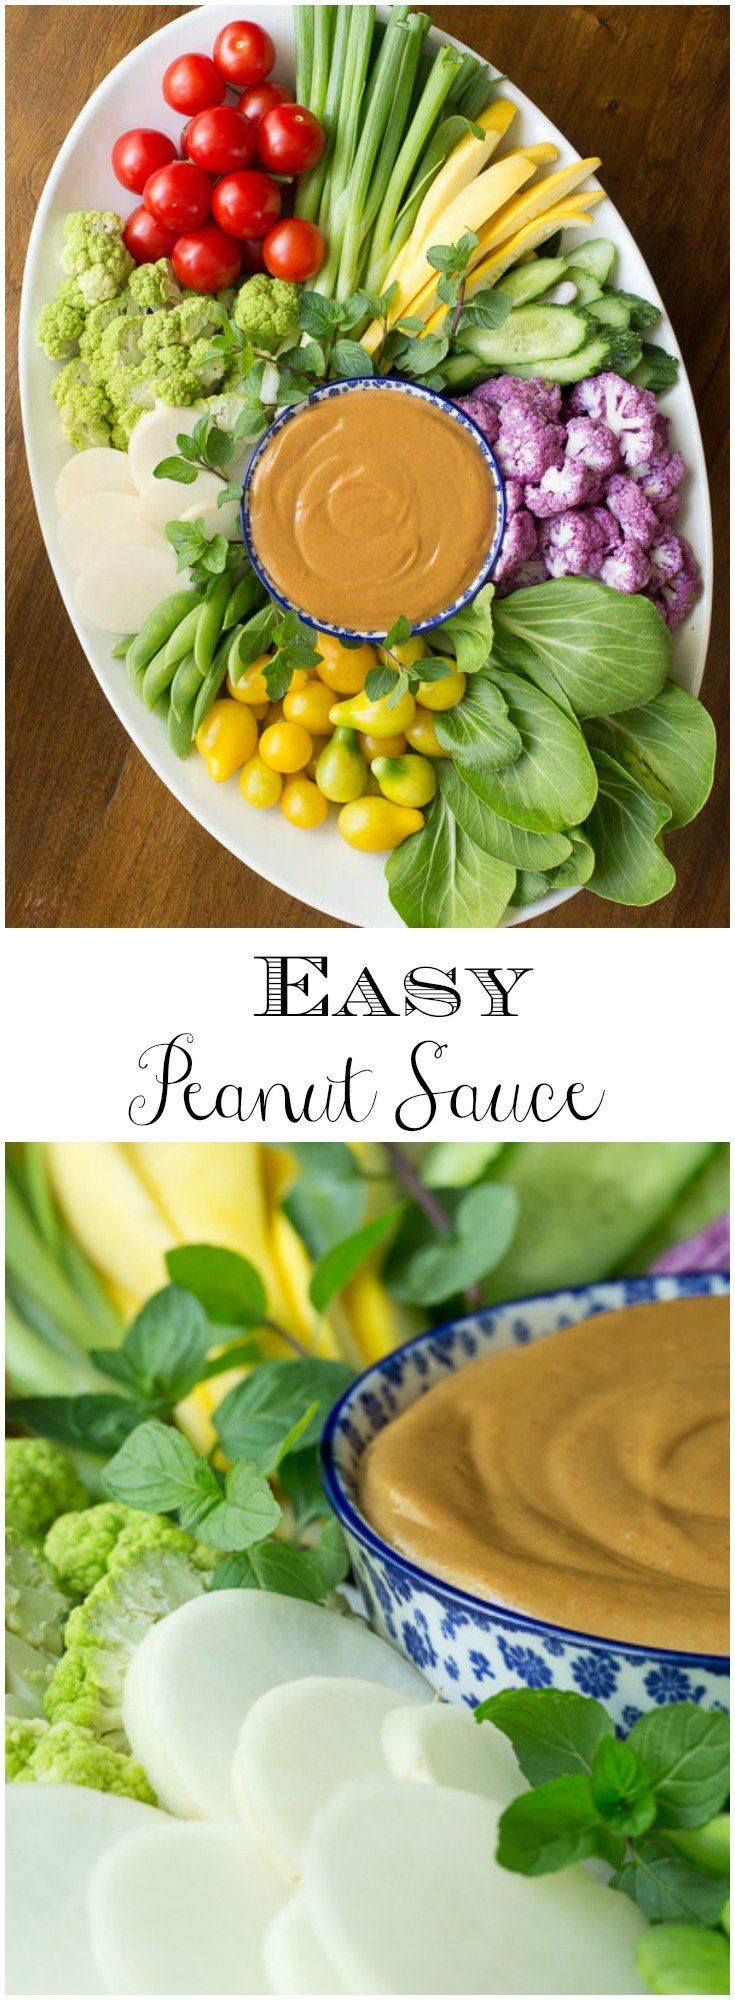 Just like the name says, this Easy Peanut Sauce is super simple!  It's delicious with raw veggies and grilled entrees but that's just the beginning!